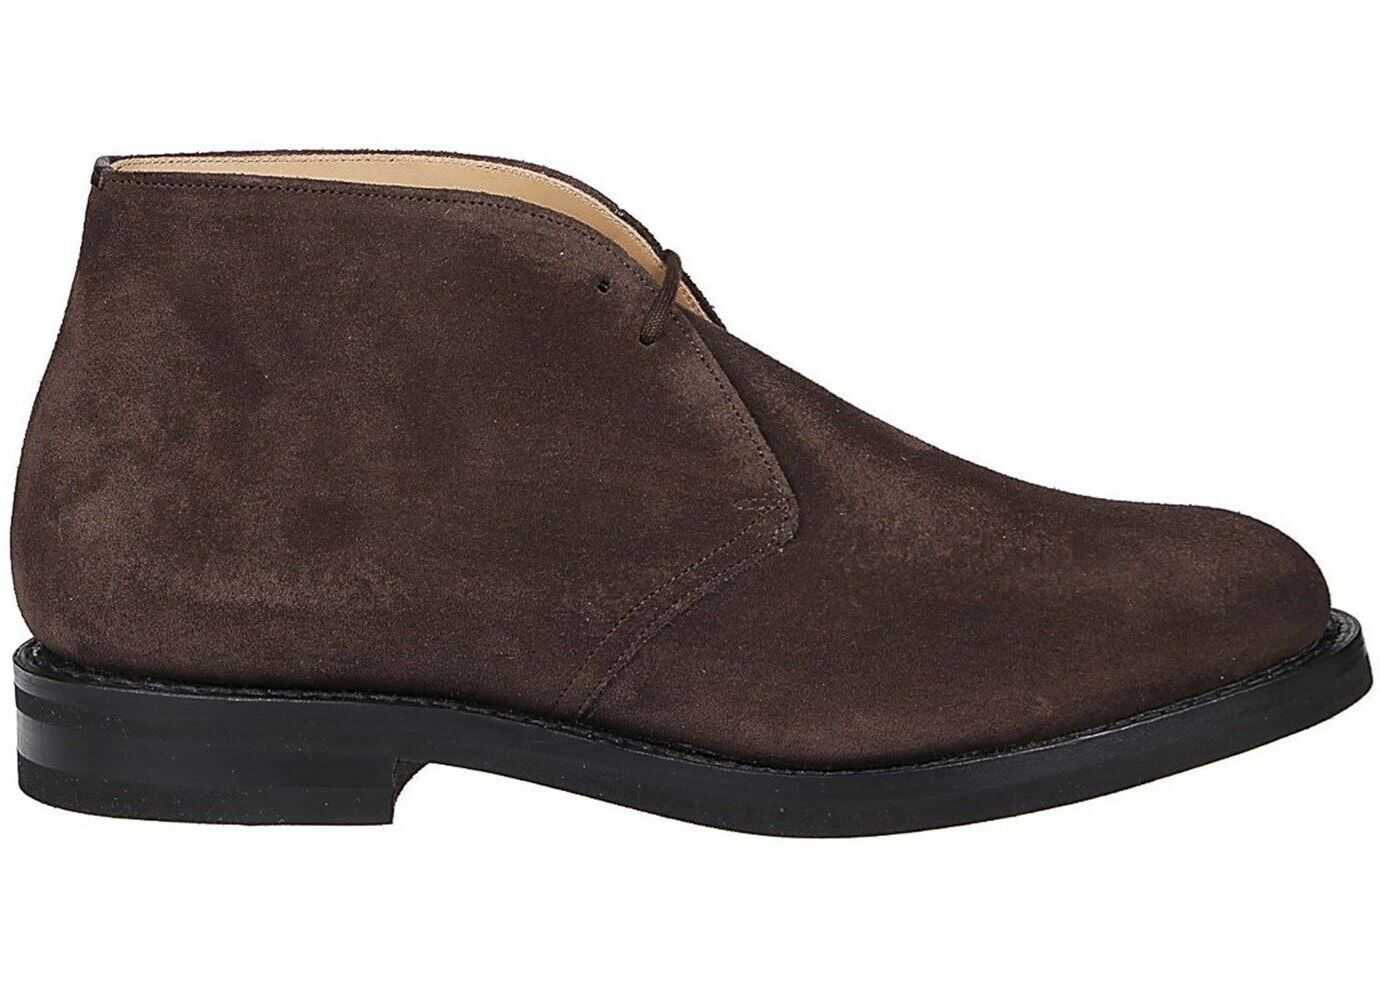 Church's Ryder Suede Desert Boots In Brown ETC212 9VE F0ADD Brown imagine b-mall.ro